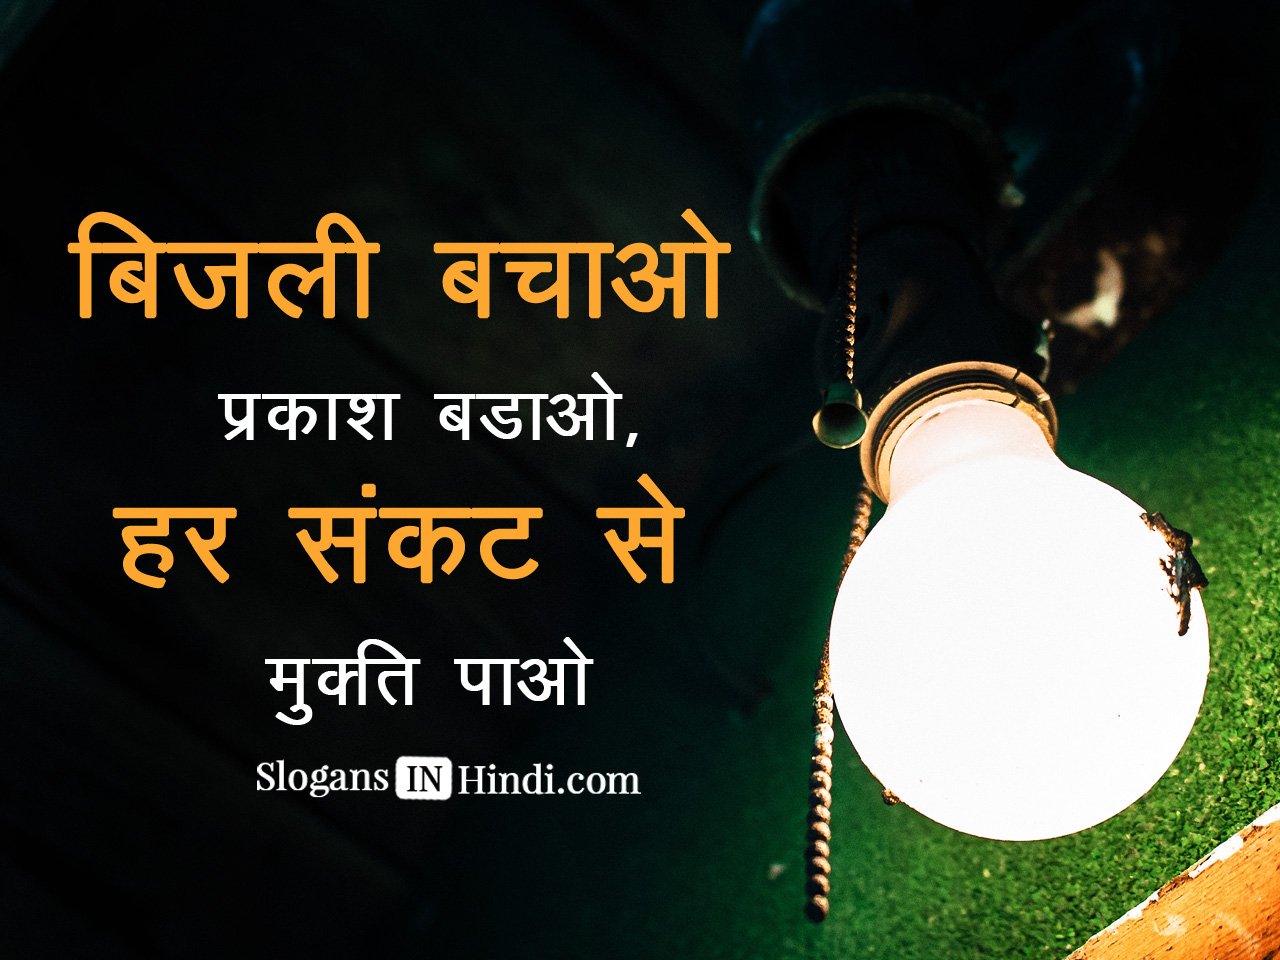 Electricity Slogans In Hindi